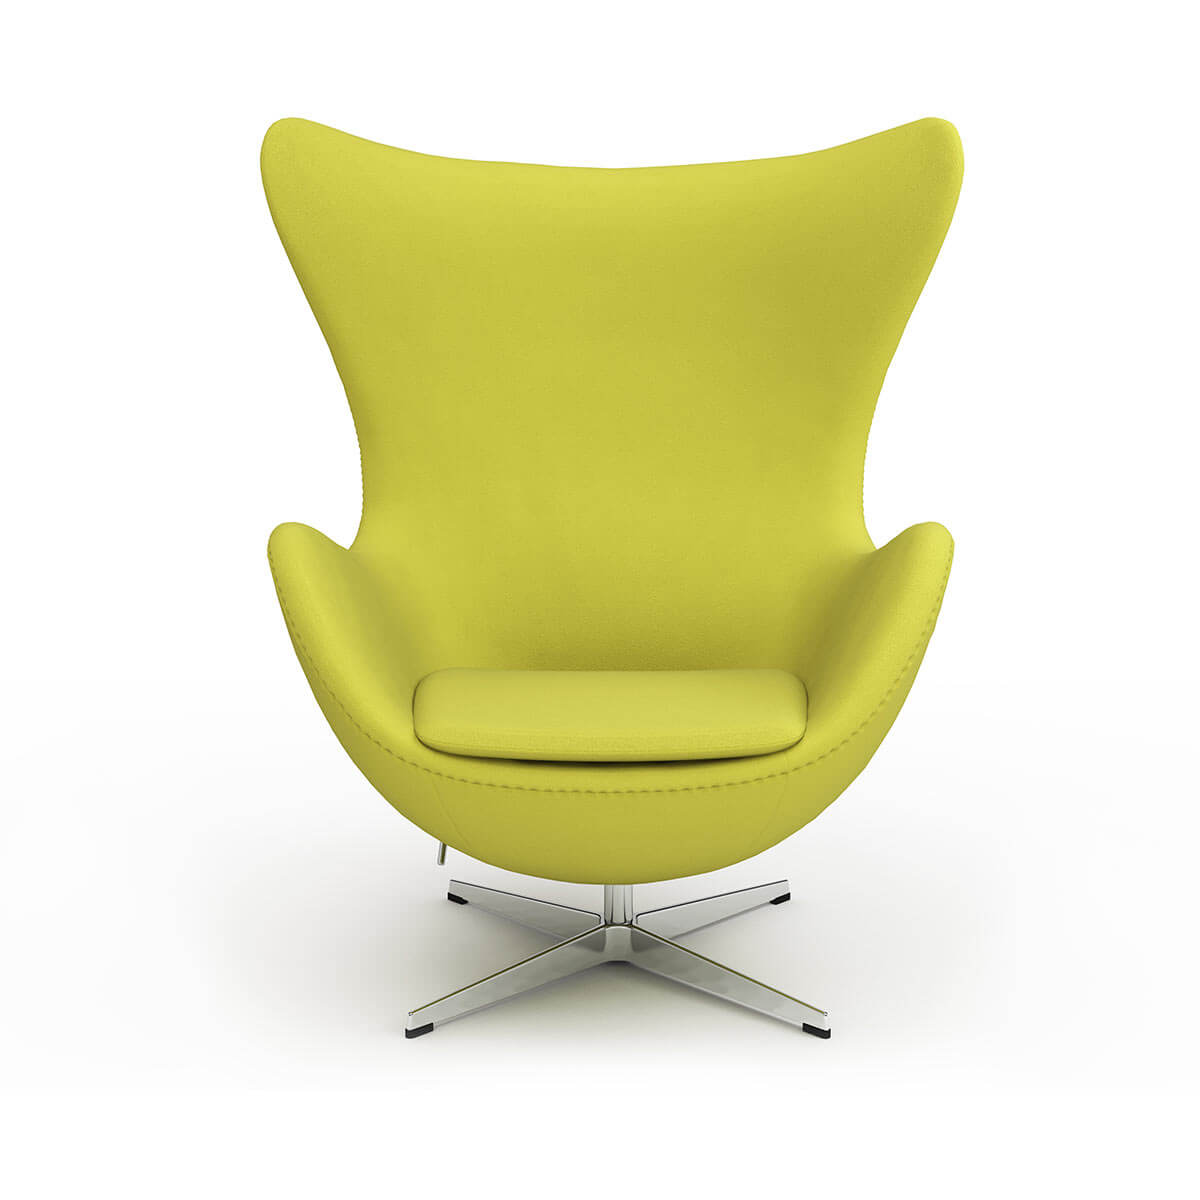 3D model of famous Egg chair, 3d modeling in London UK.